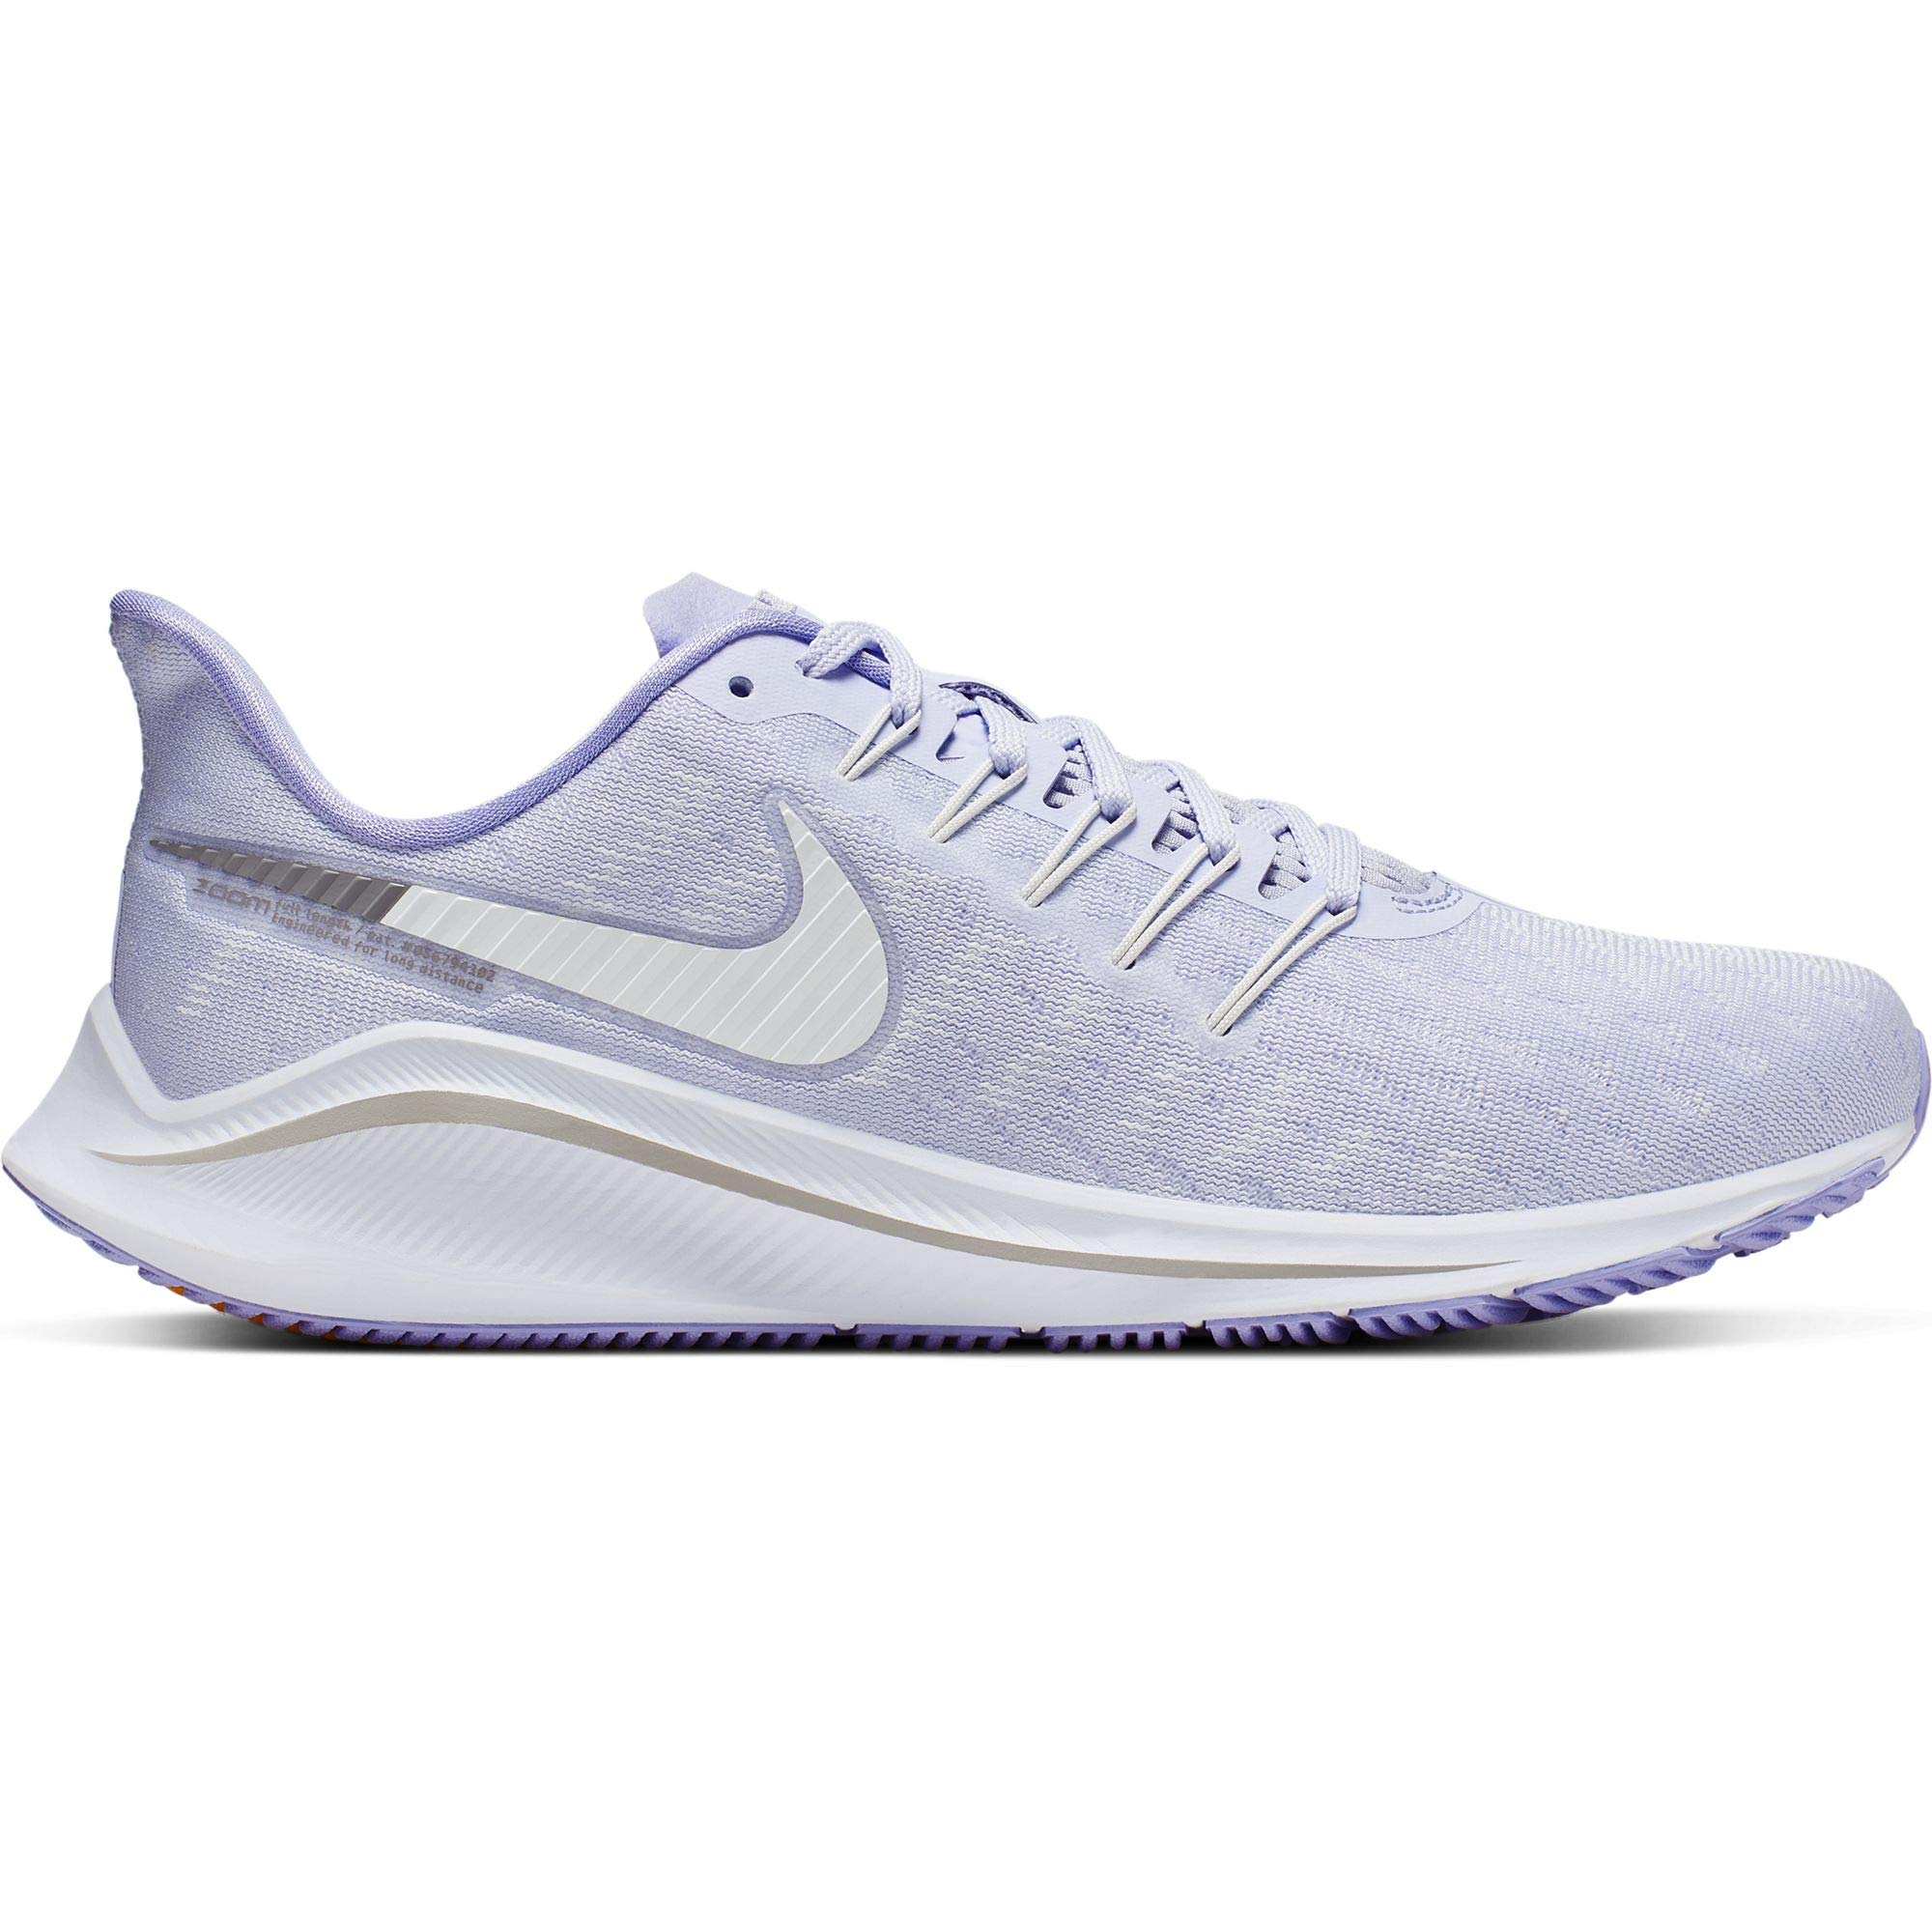 Nike Air Zoom Vomero 14 Women's Running Shoe Amethyst Tint/White-Purple Agate 9.5 by Nike